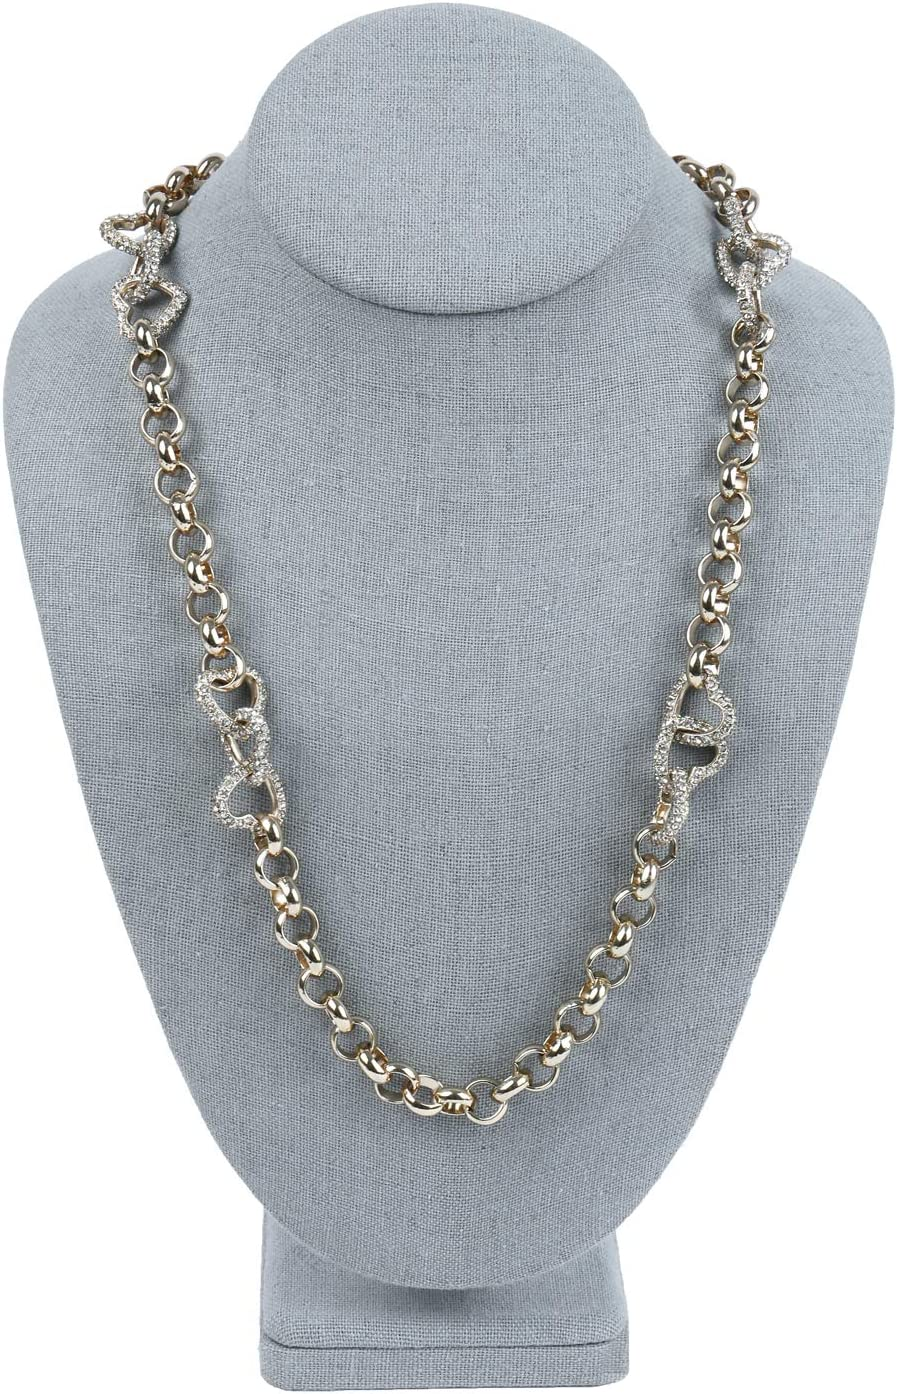 Details about  /Plastic Pendant Necklace Chain Earring Bust Neck Display Stand Holder Showcase U